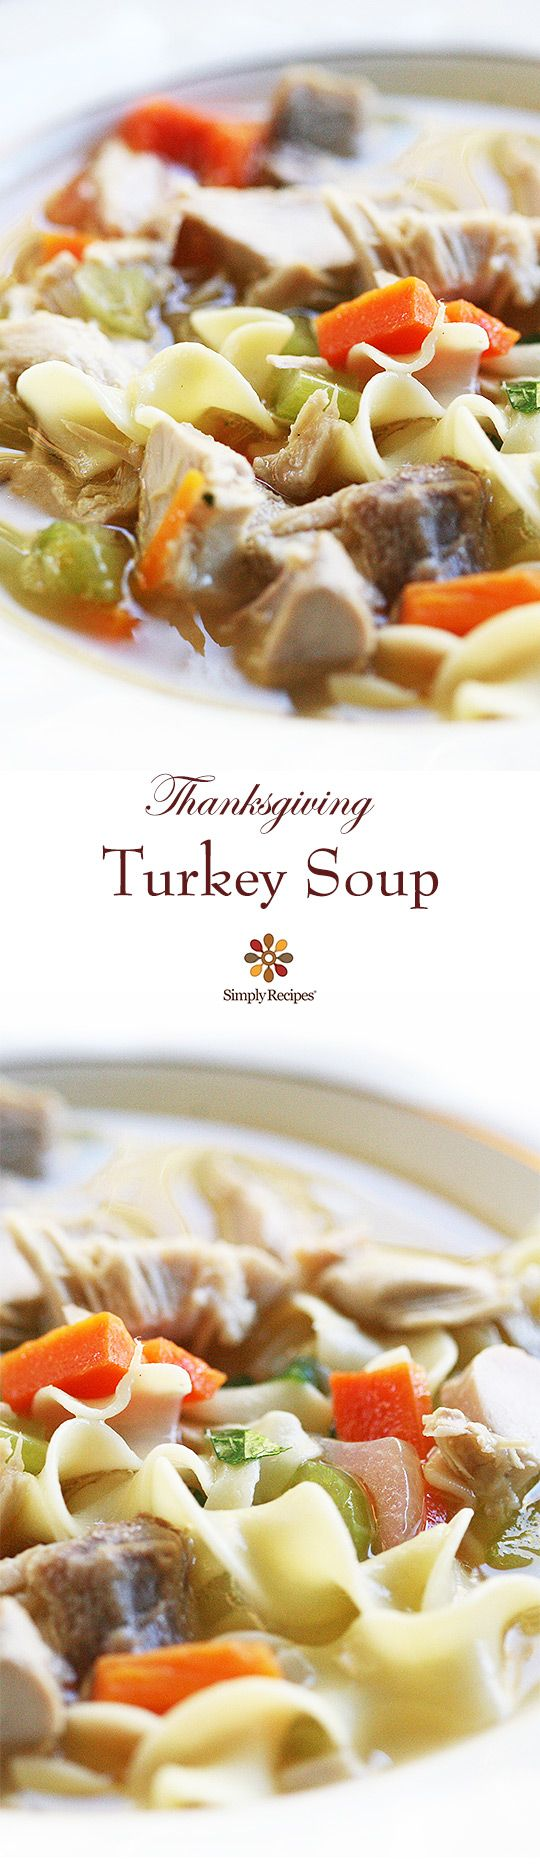 Classic turkey soup recipe! Every Thanksgiving my mother takes what's left of the turkey carcass and makes a delicious turkey soup